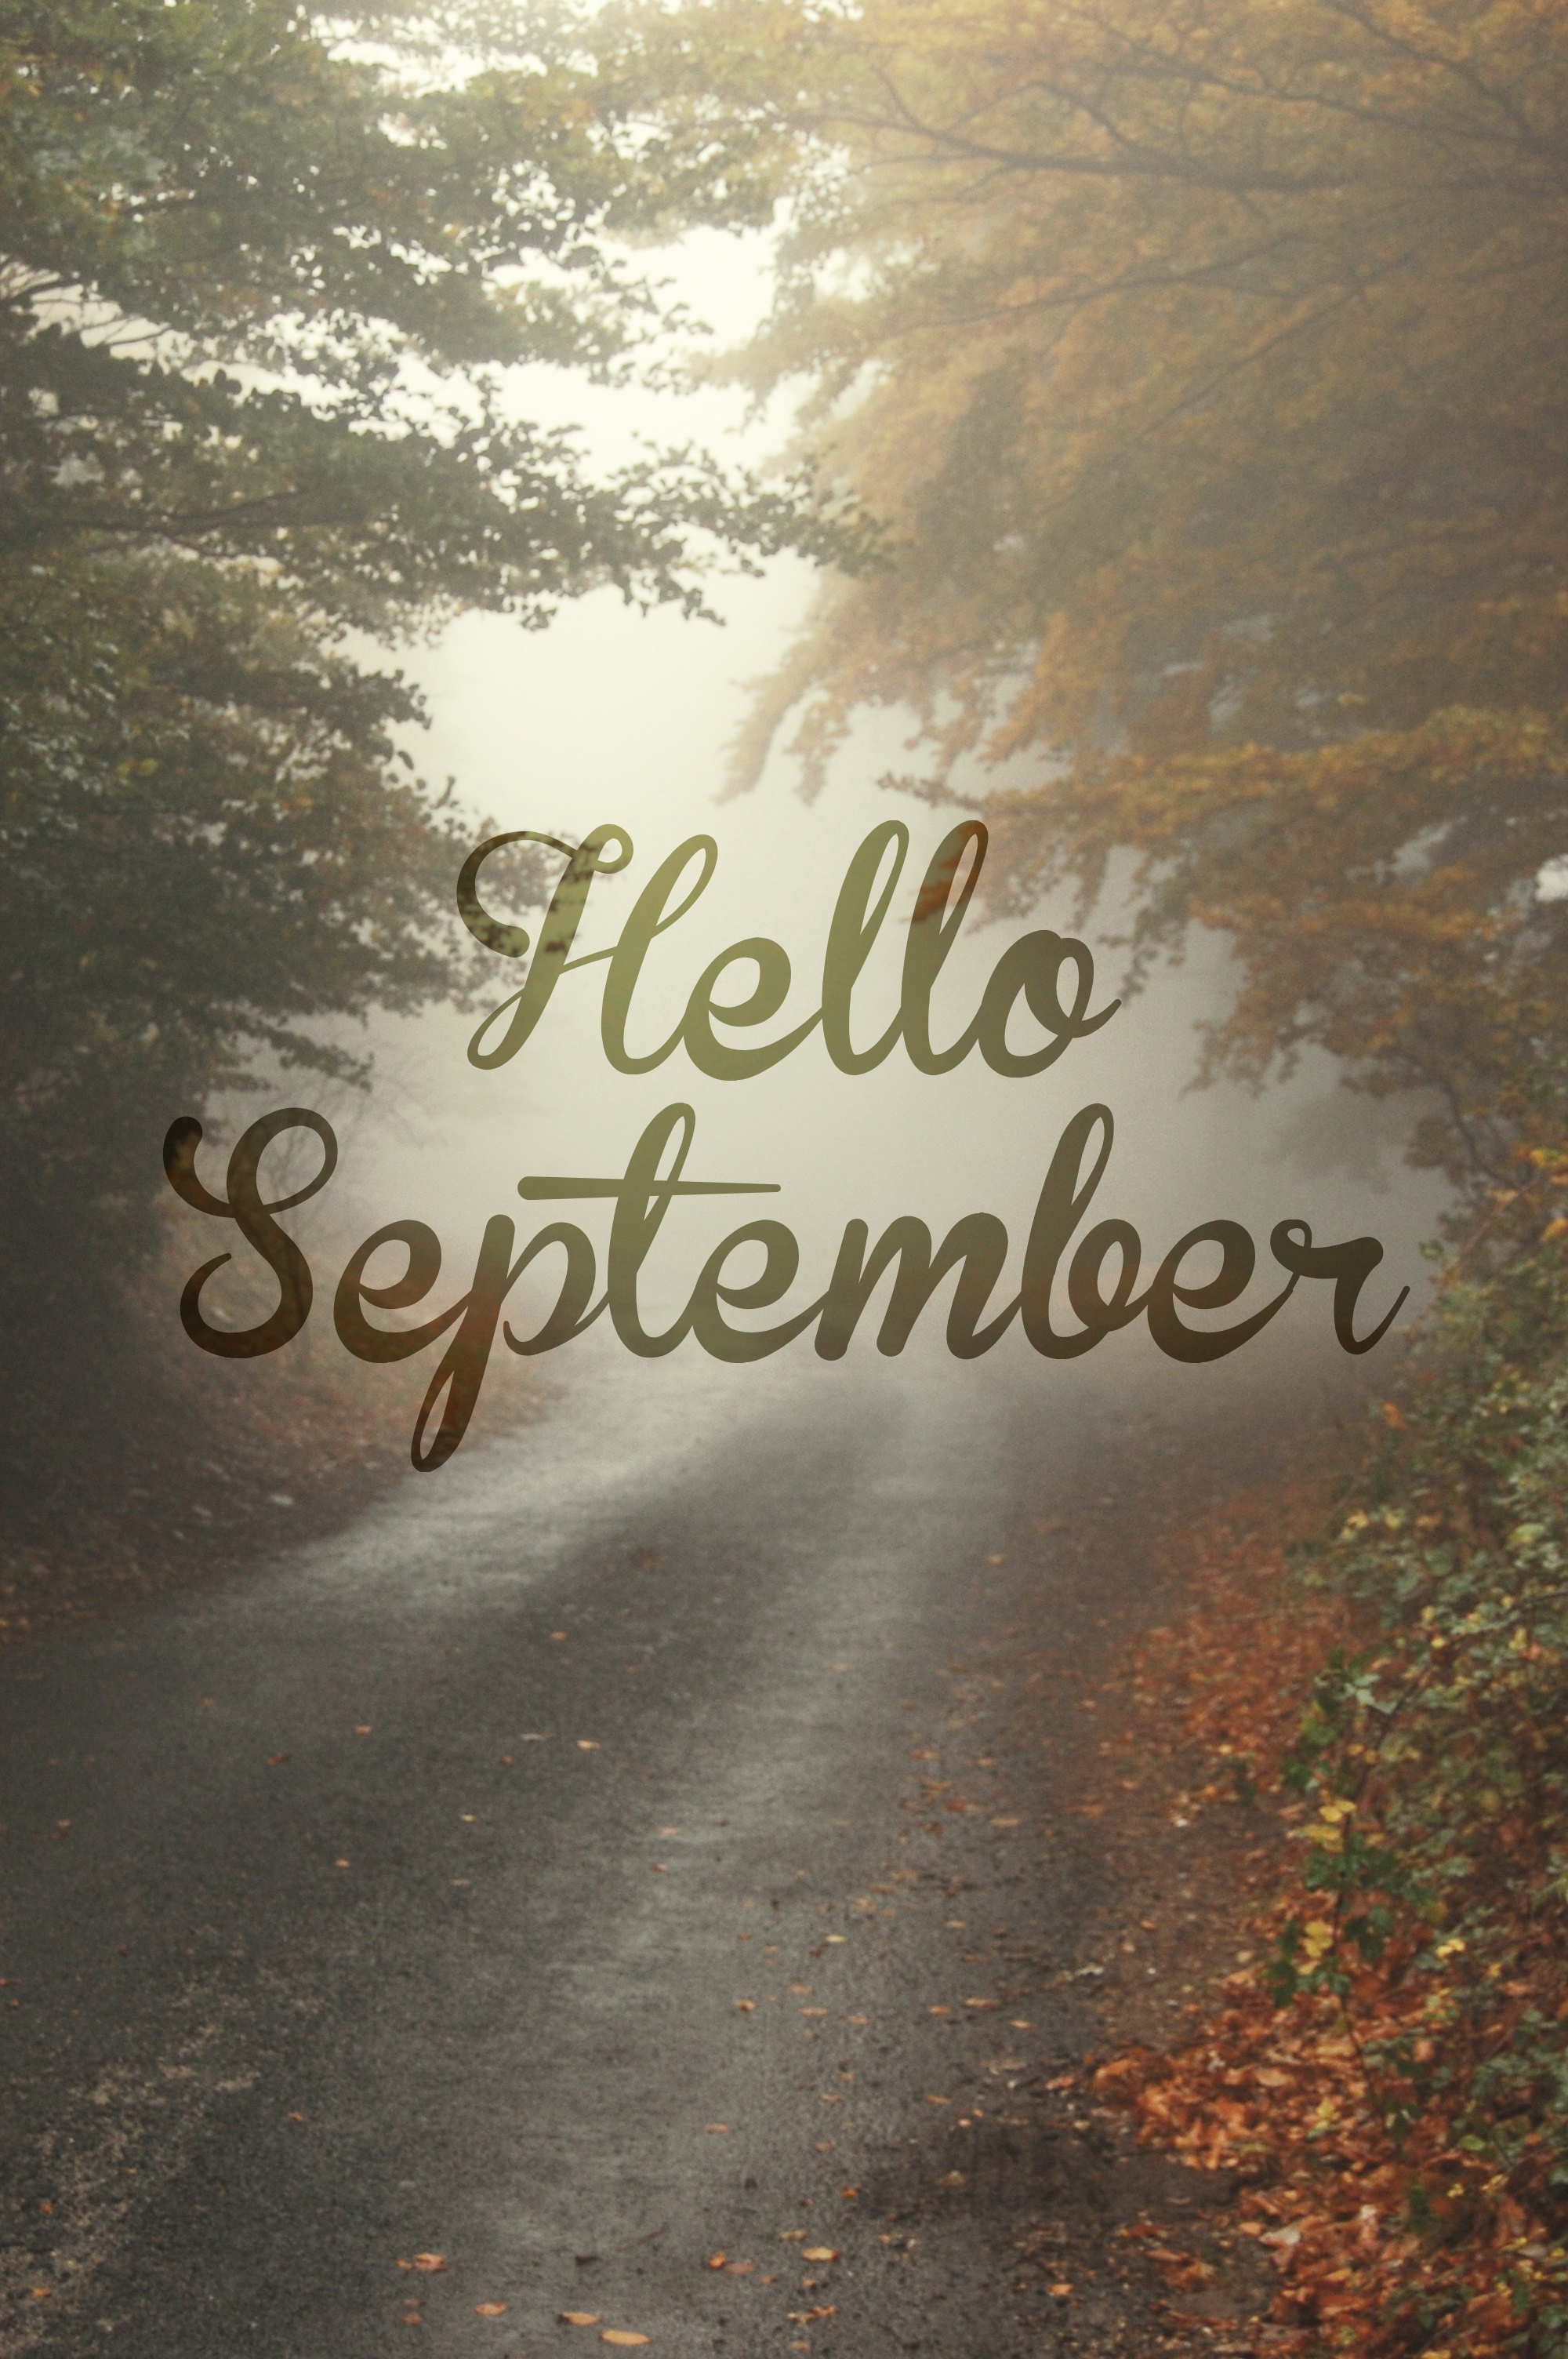 September Wallpapers High Quality Download Free